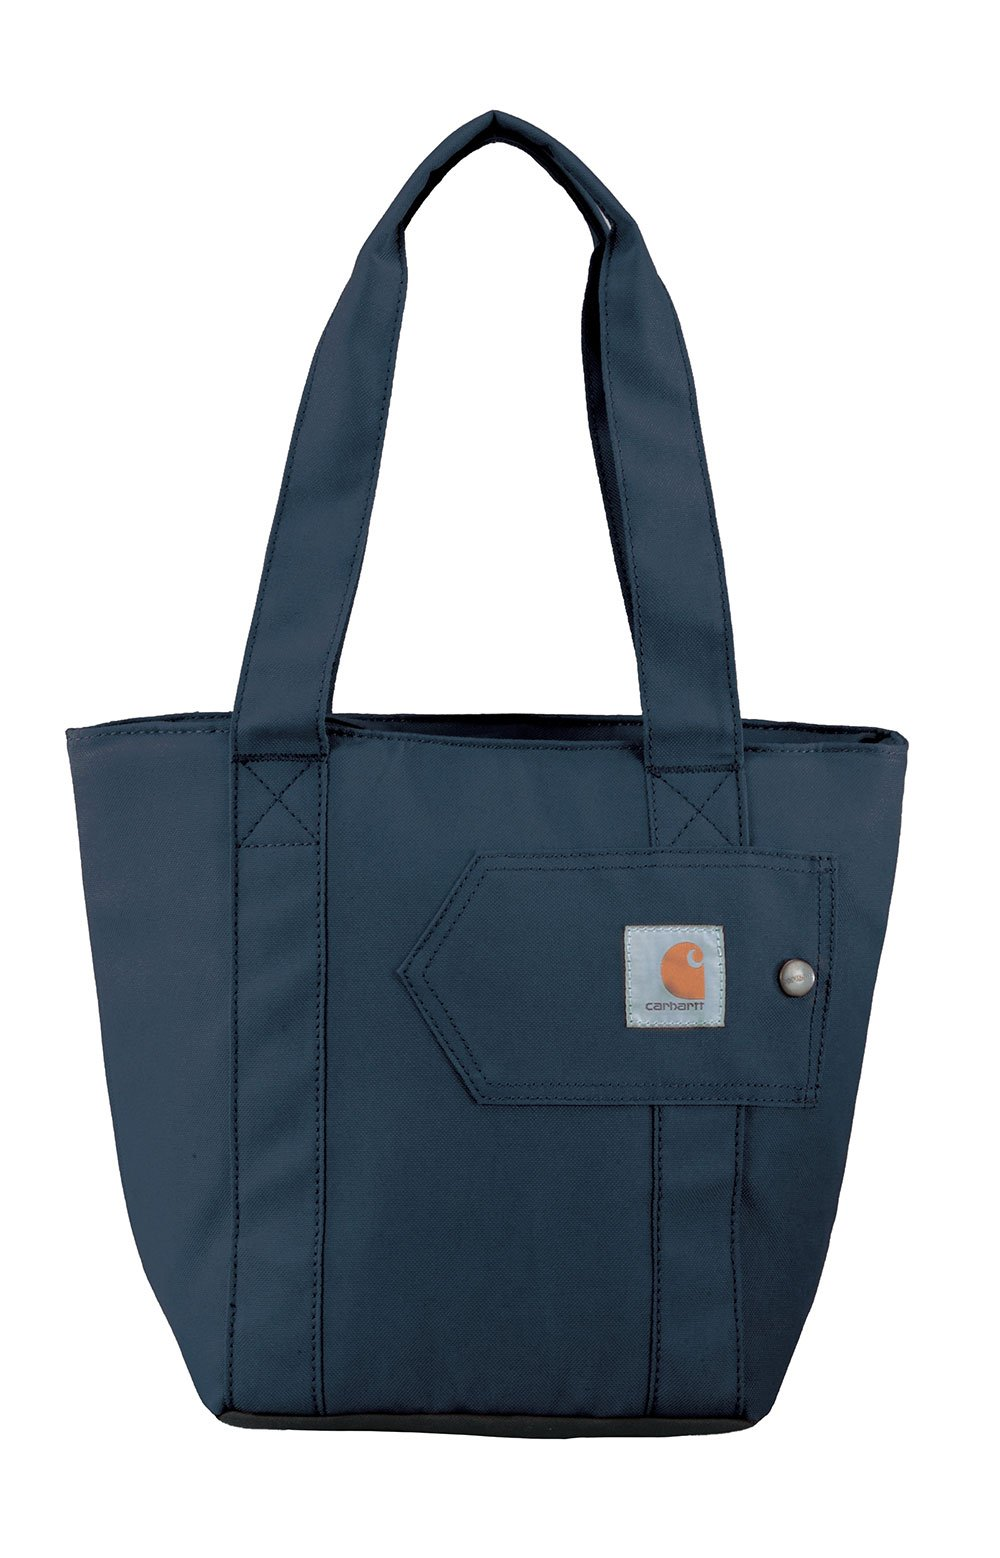 Lunch Tote Bag - Navy